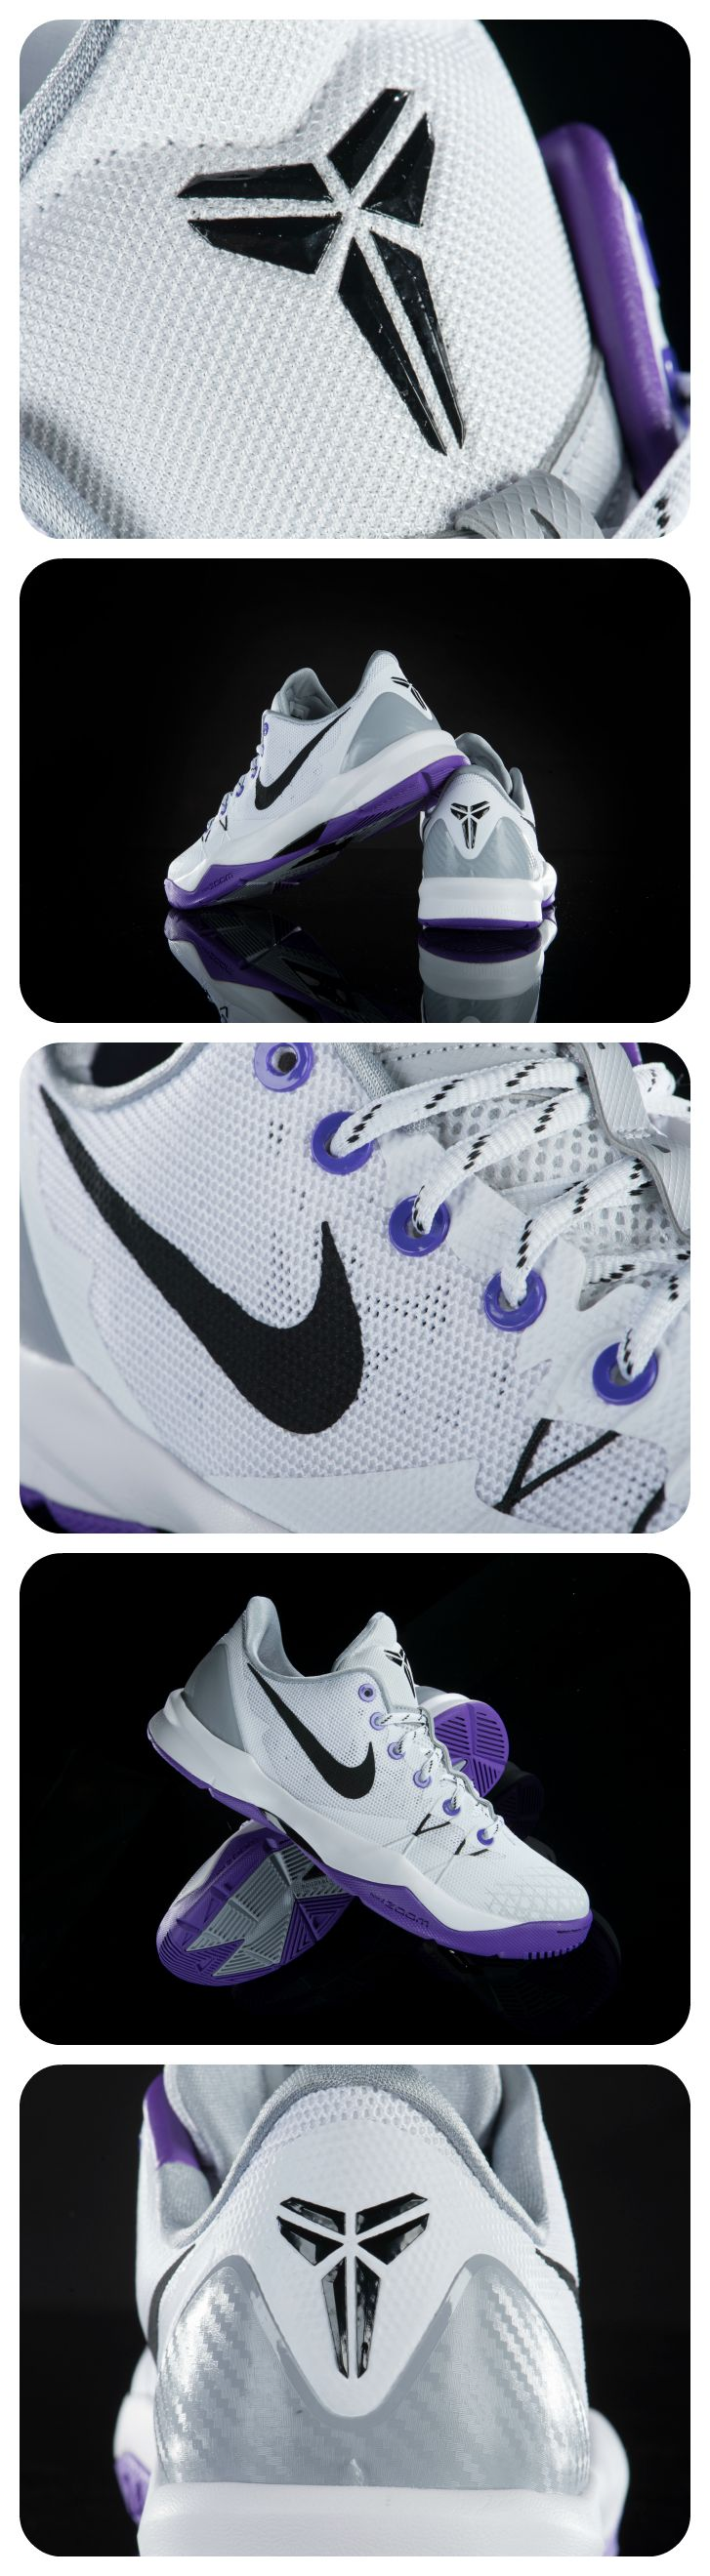 Get the recently released Nike Kobe Venomenon now! #Basketball #Shoes